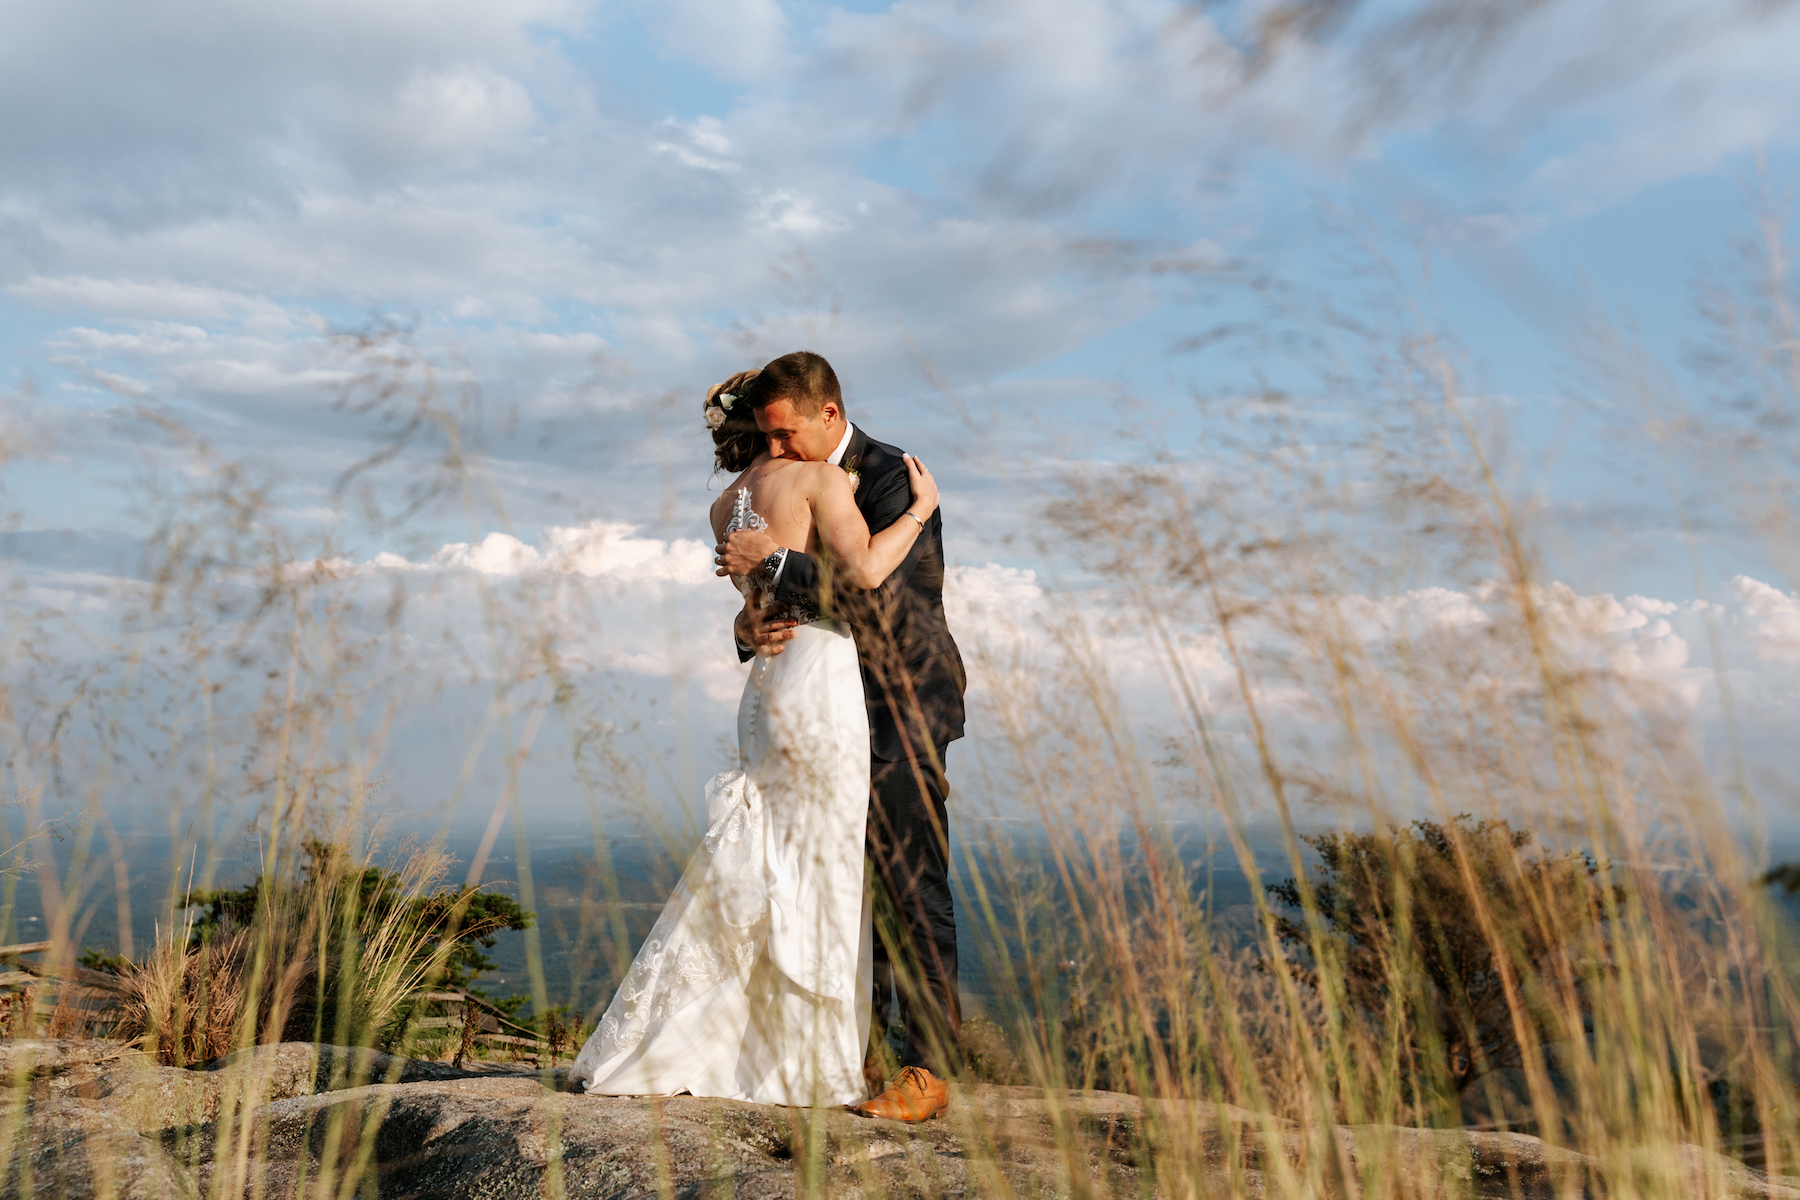 wedding-engagement-photographer-spartanburg-greenville-columbia-carolina-south-north-528.JPG